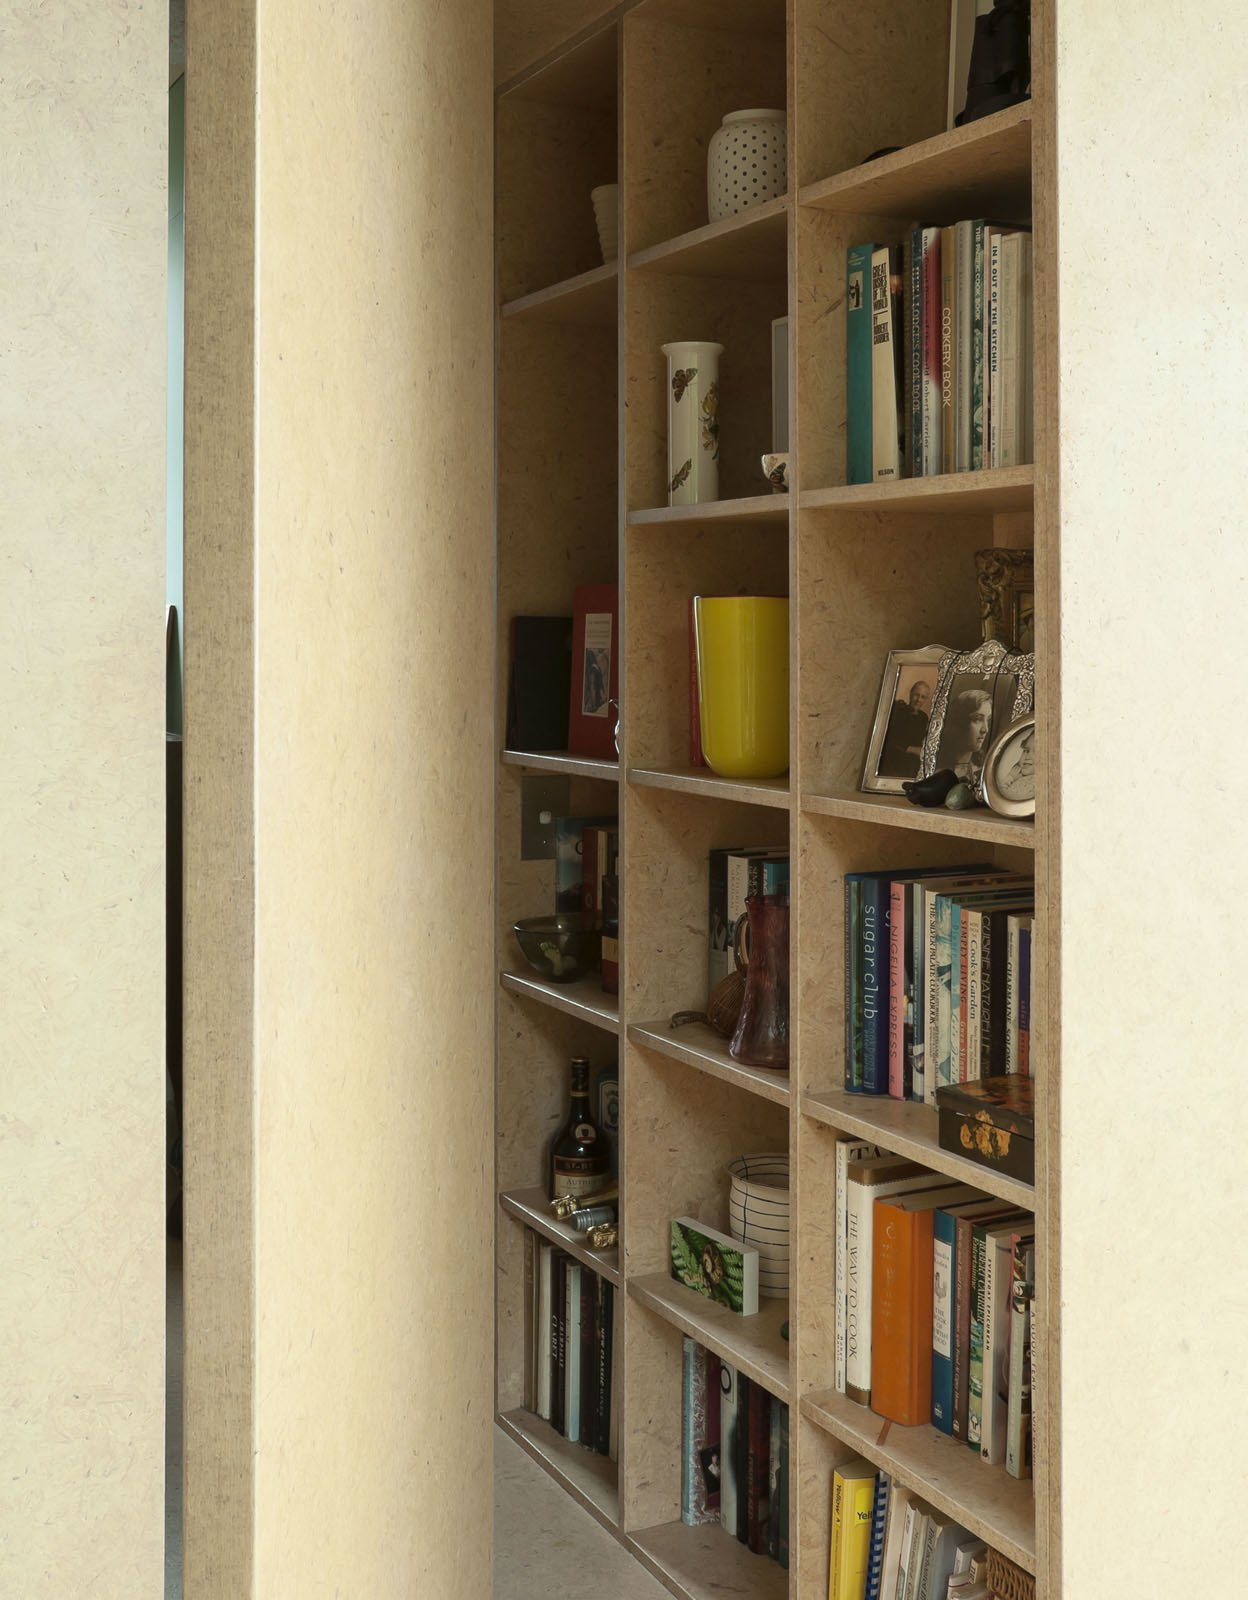 Yates used the same medium density fiberboard on this bookshelf as she did on the wall in the kitchen.